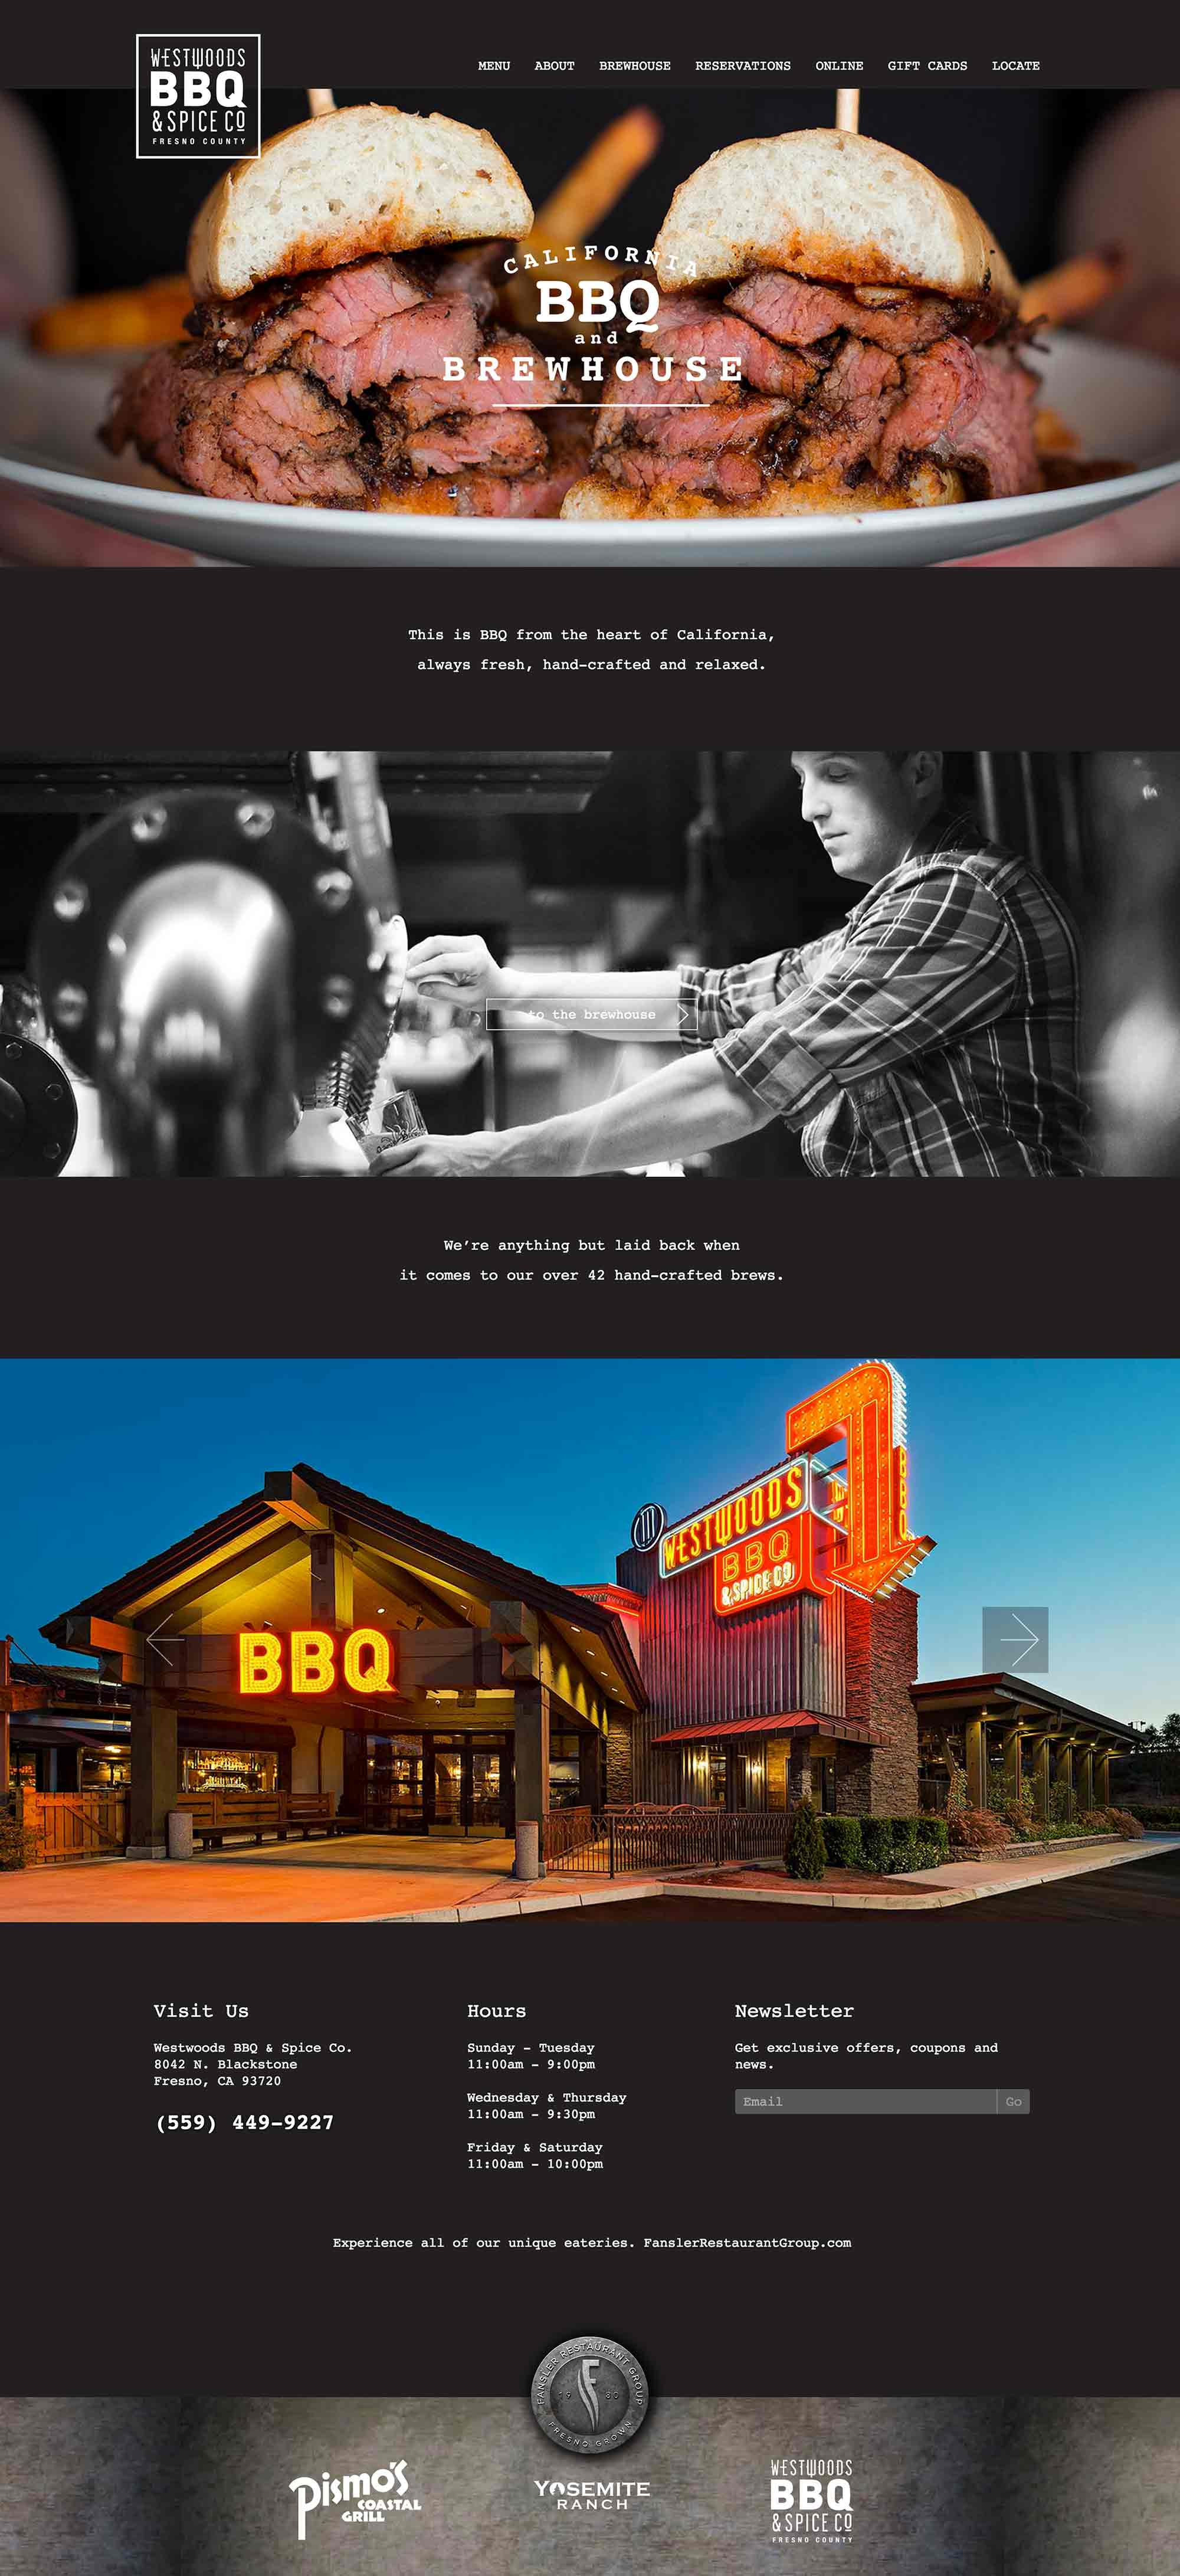 Screen shot of the Westwoods BBQ web site by Lee Powers.